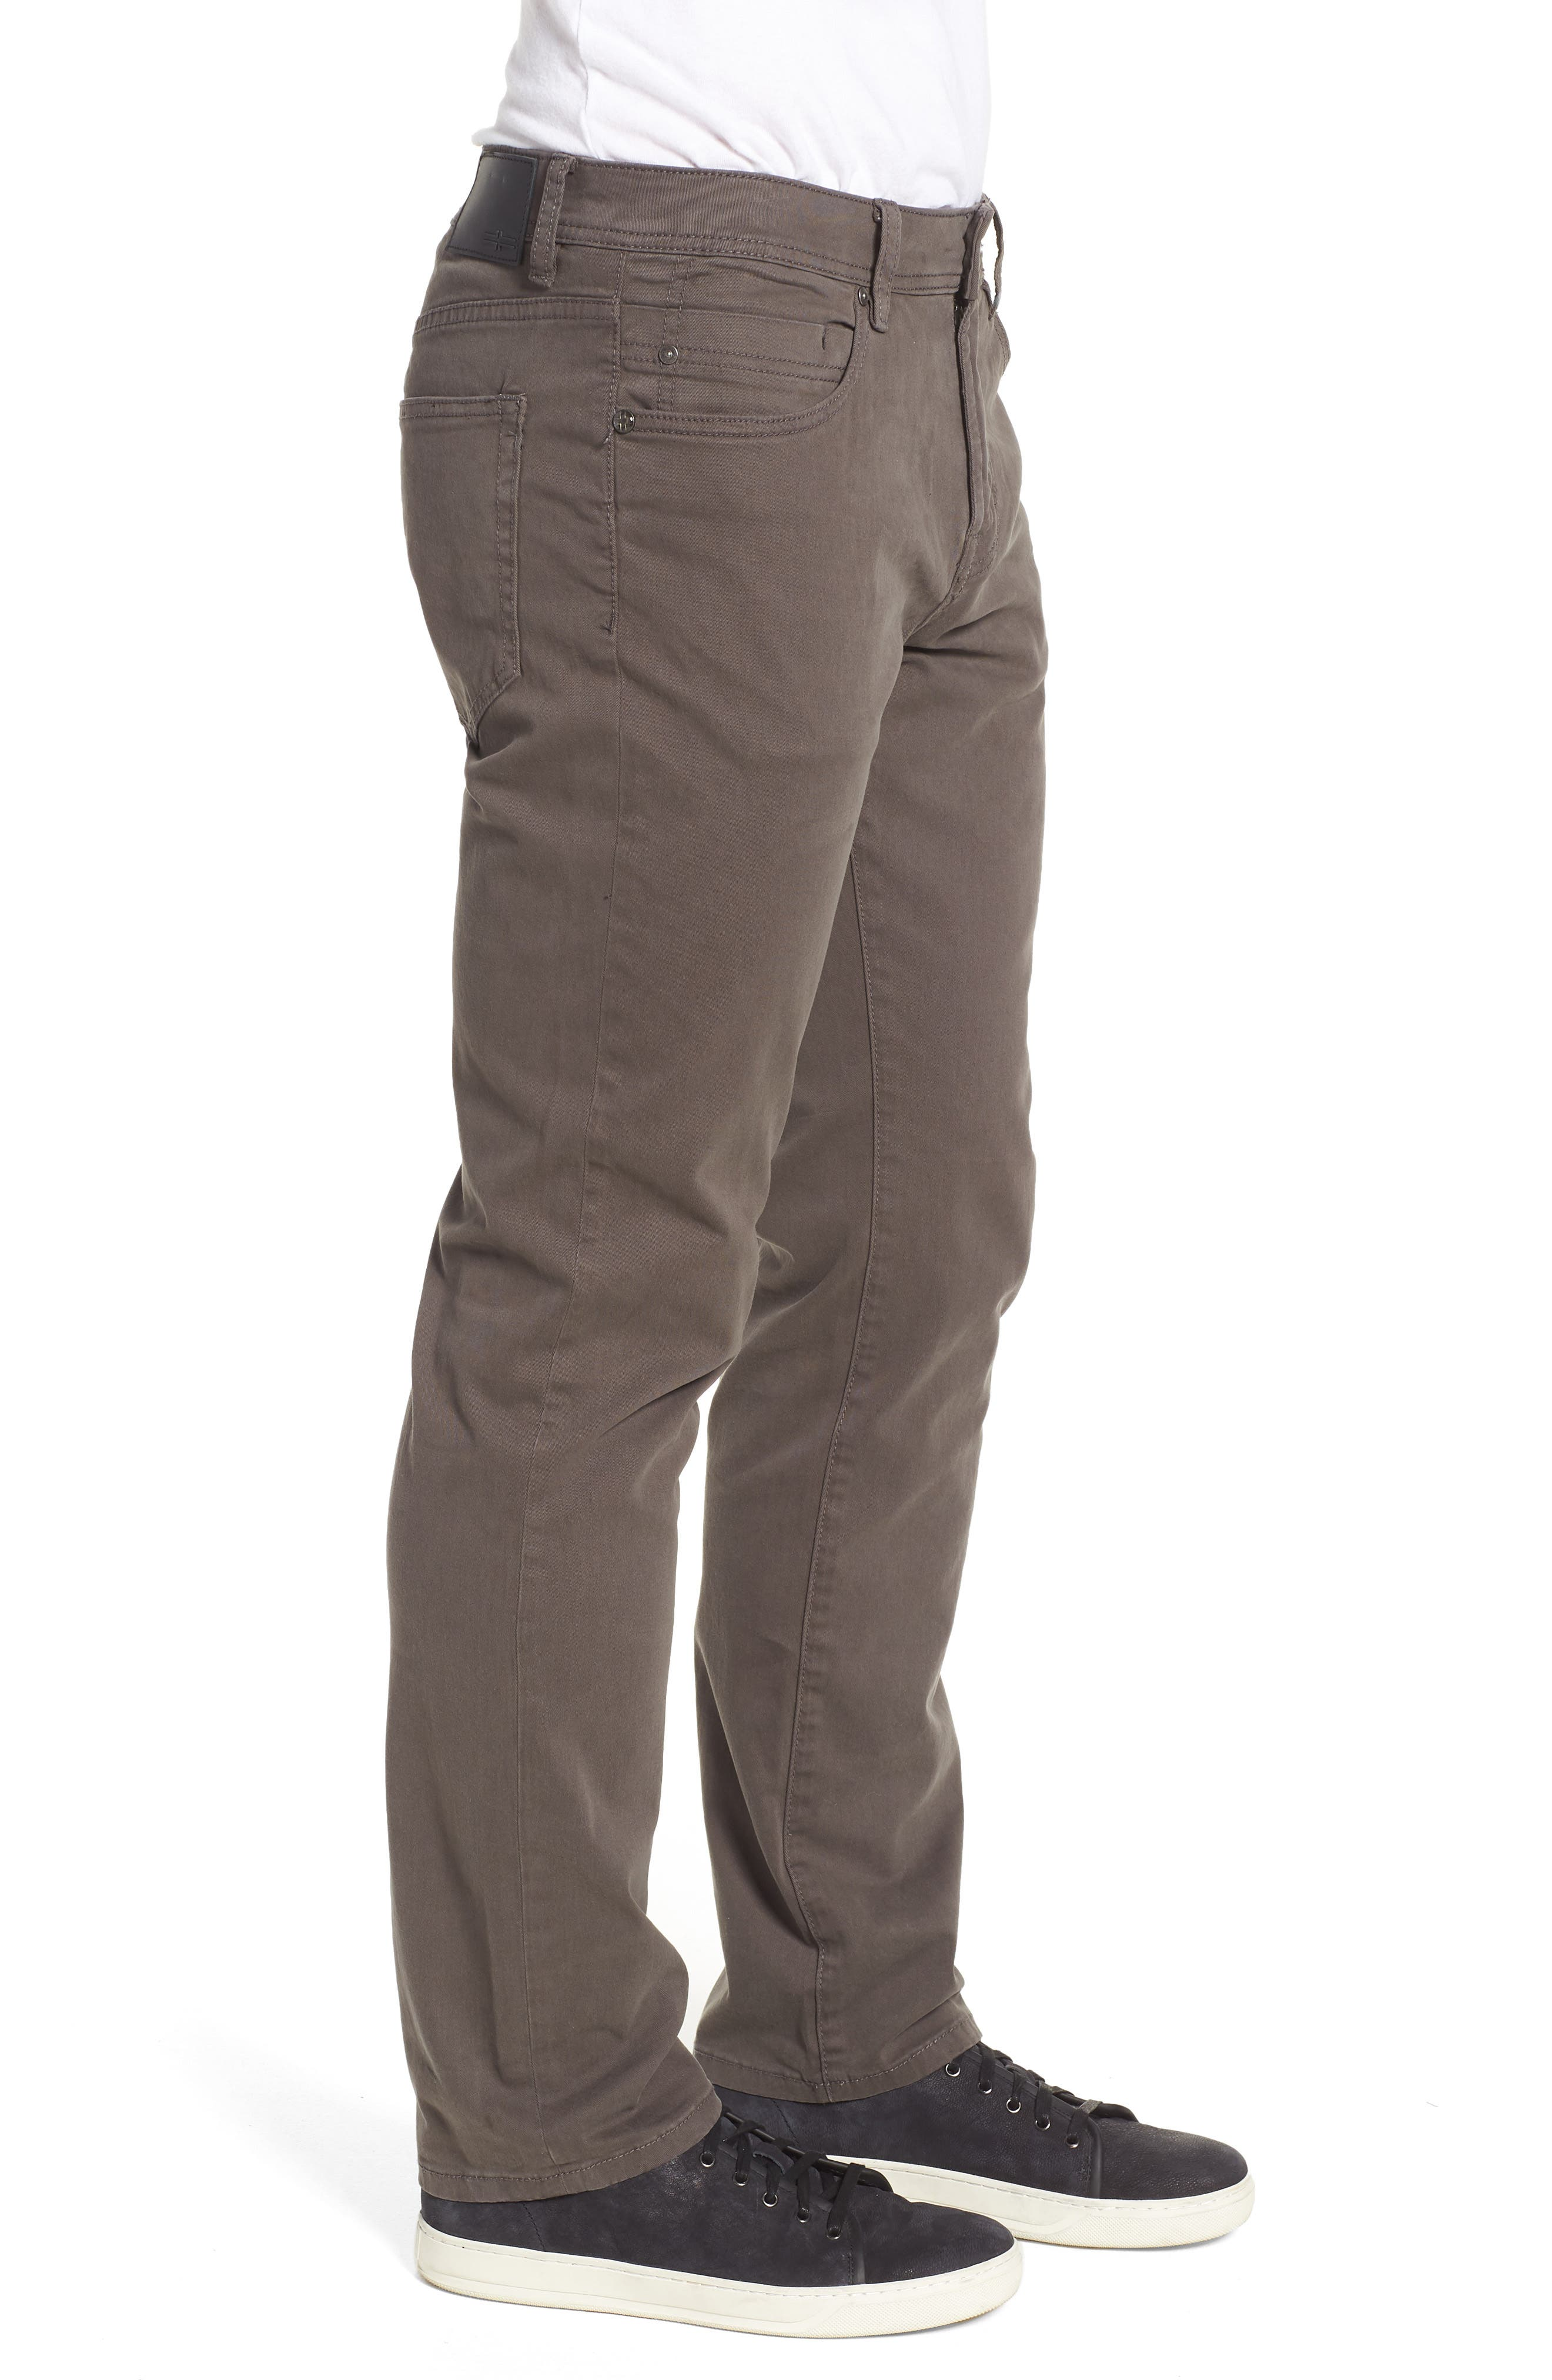 Jeans Co. Regent Relaxed Fit Jeans,                             Alternate thumbnail 3, color,                             Deep Earth